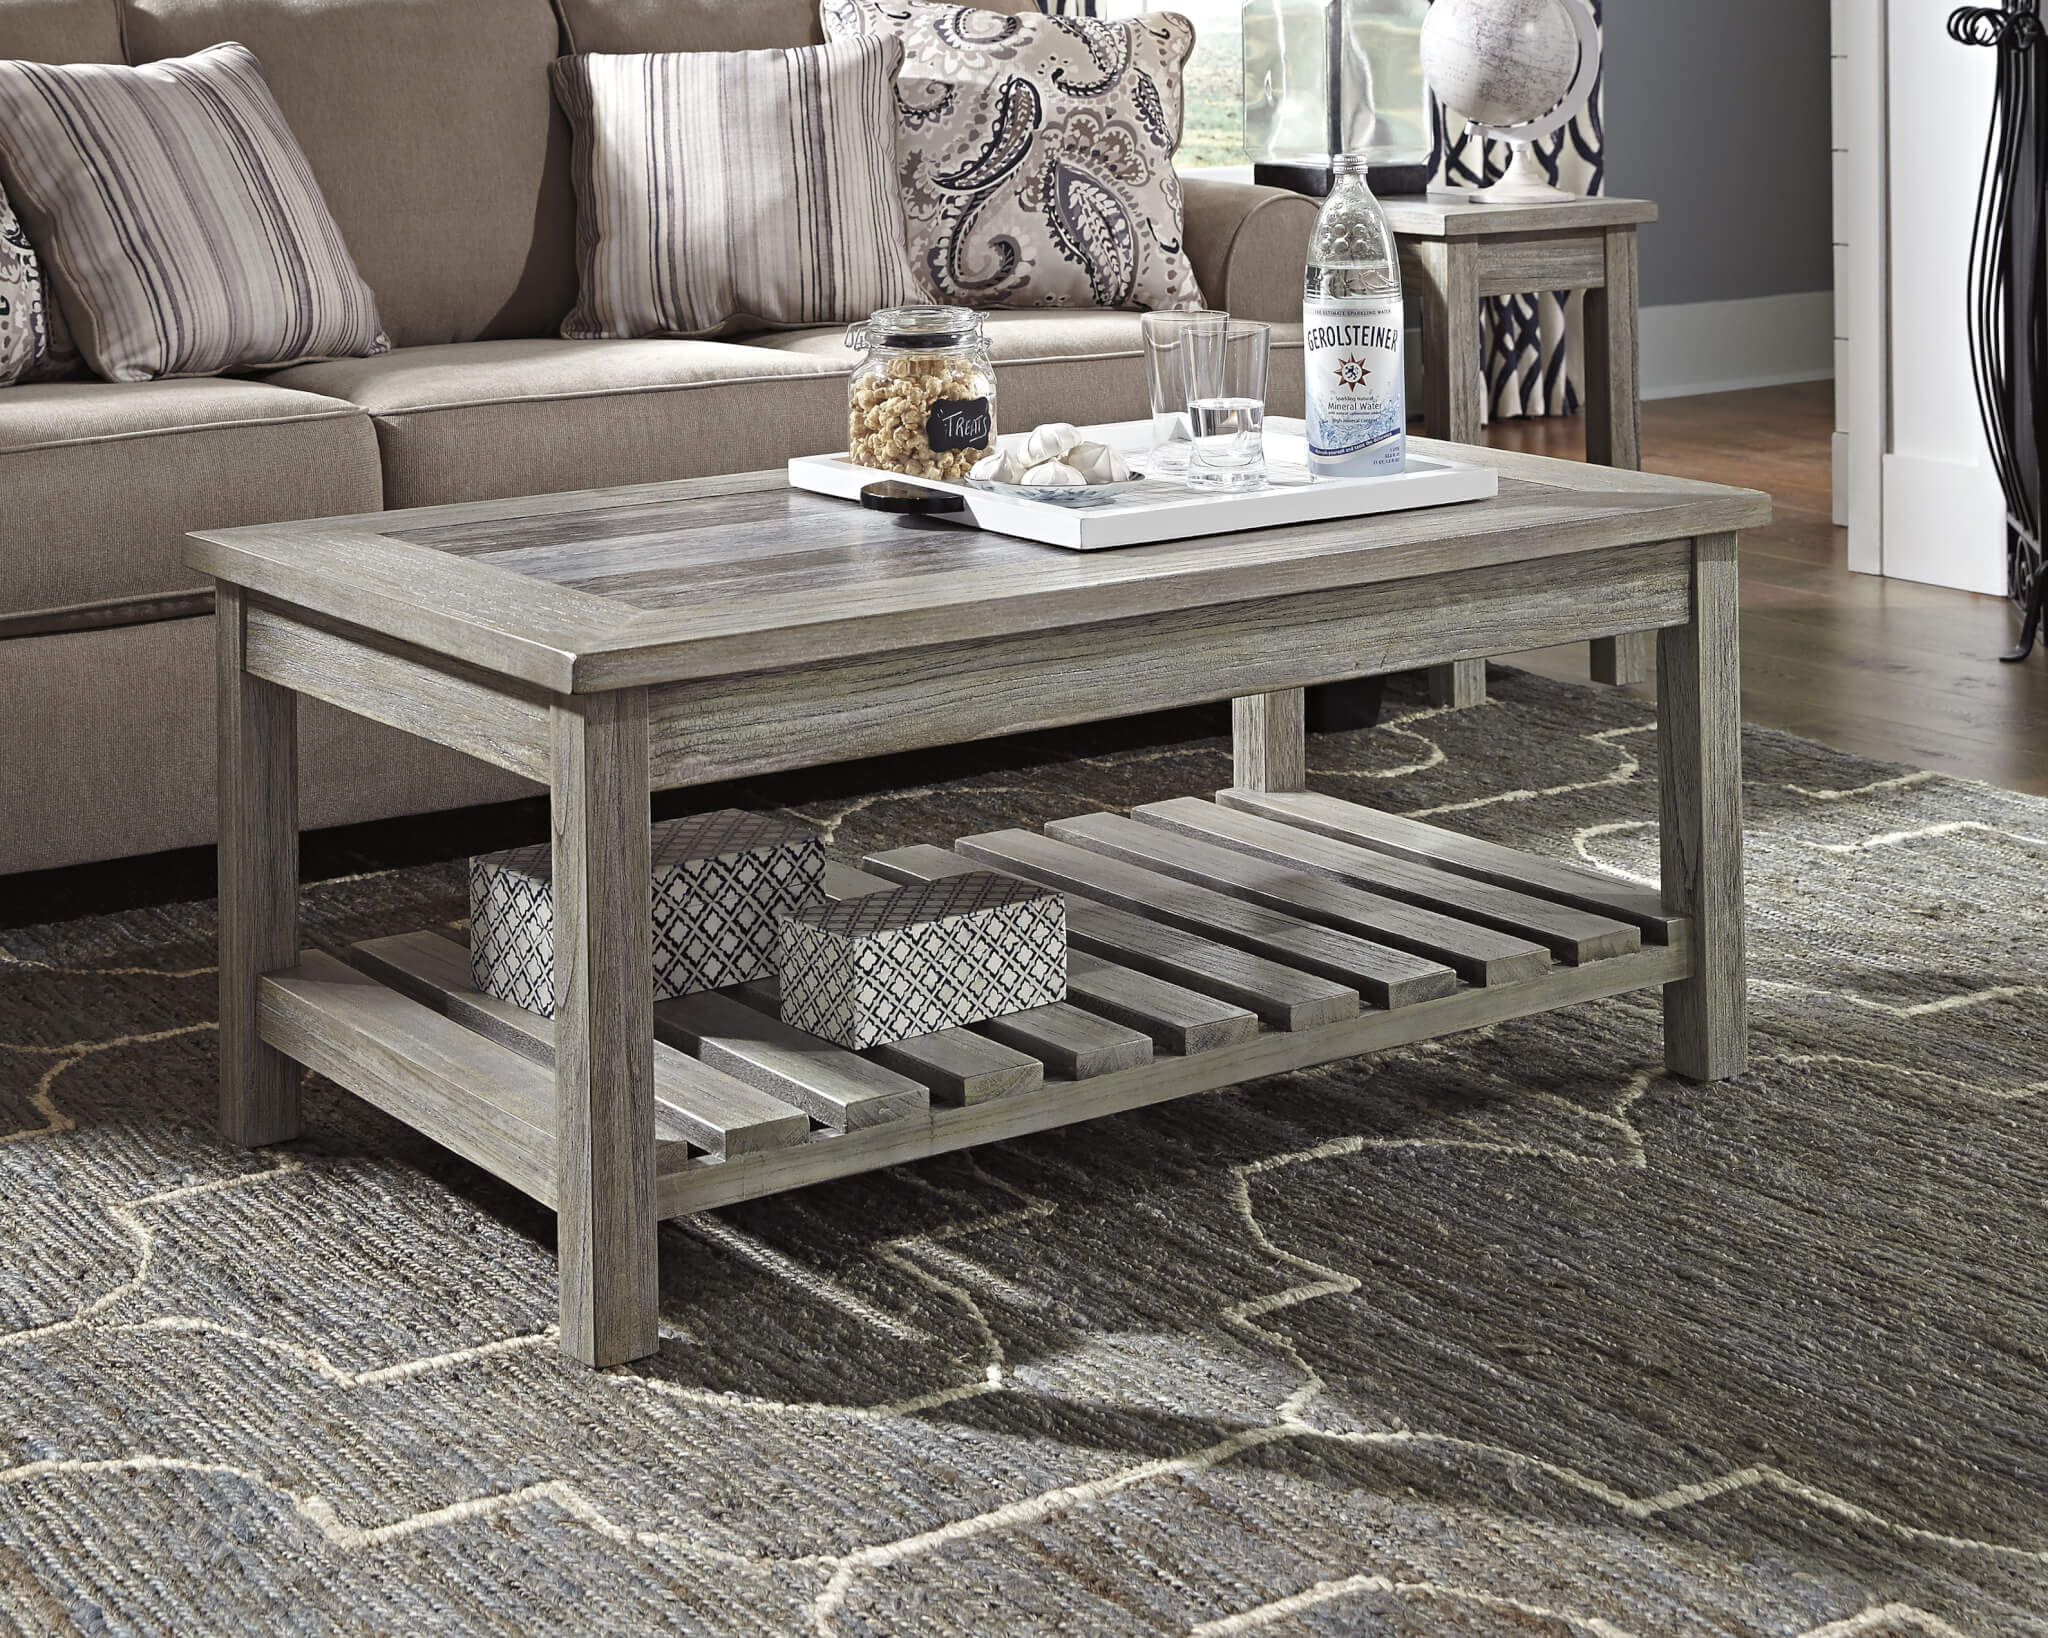 Terrific Coffee Table Dimension Guide Ashley Furniture Homestore Alphanode Cool Chair Designs And Ideas Alphanodeonline